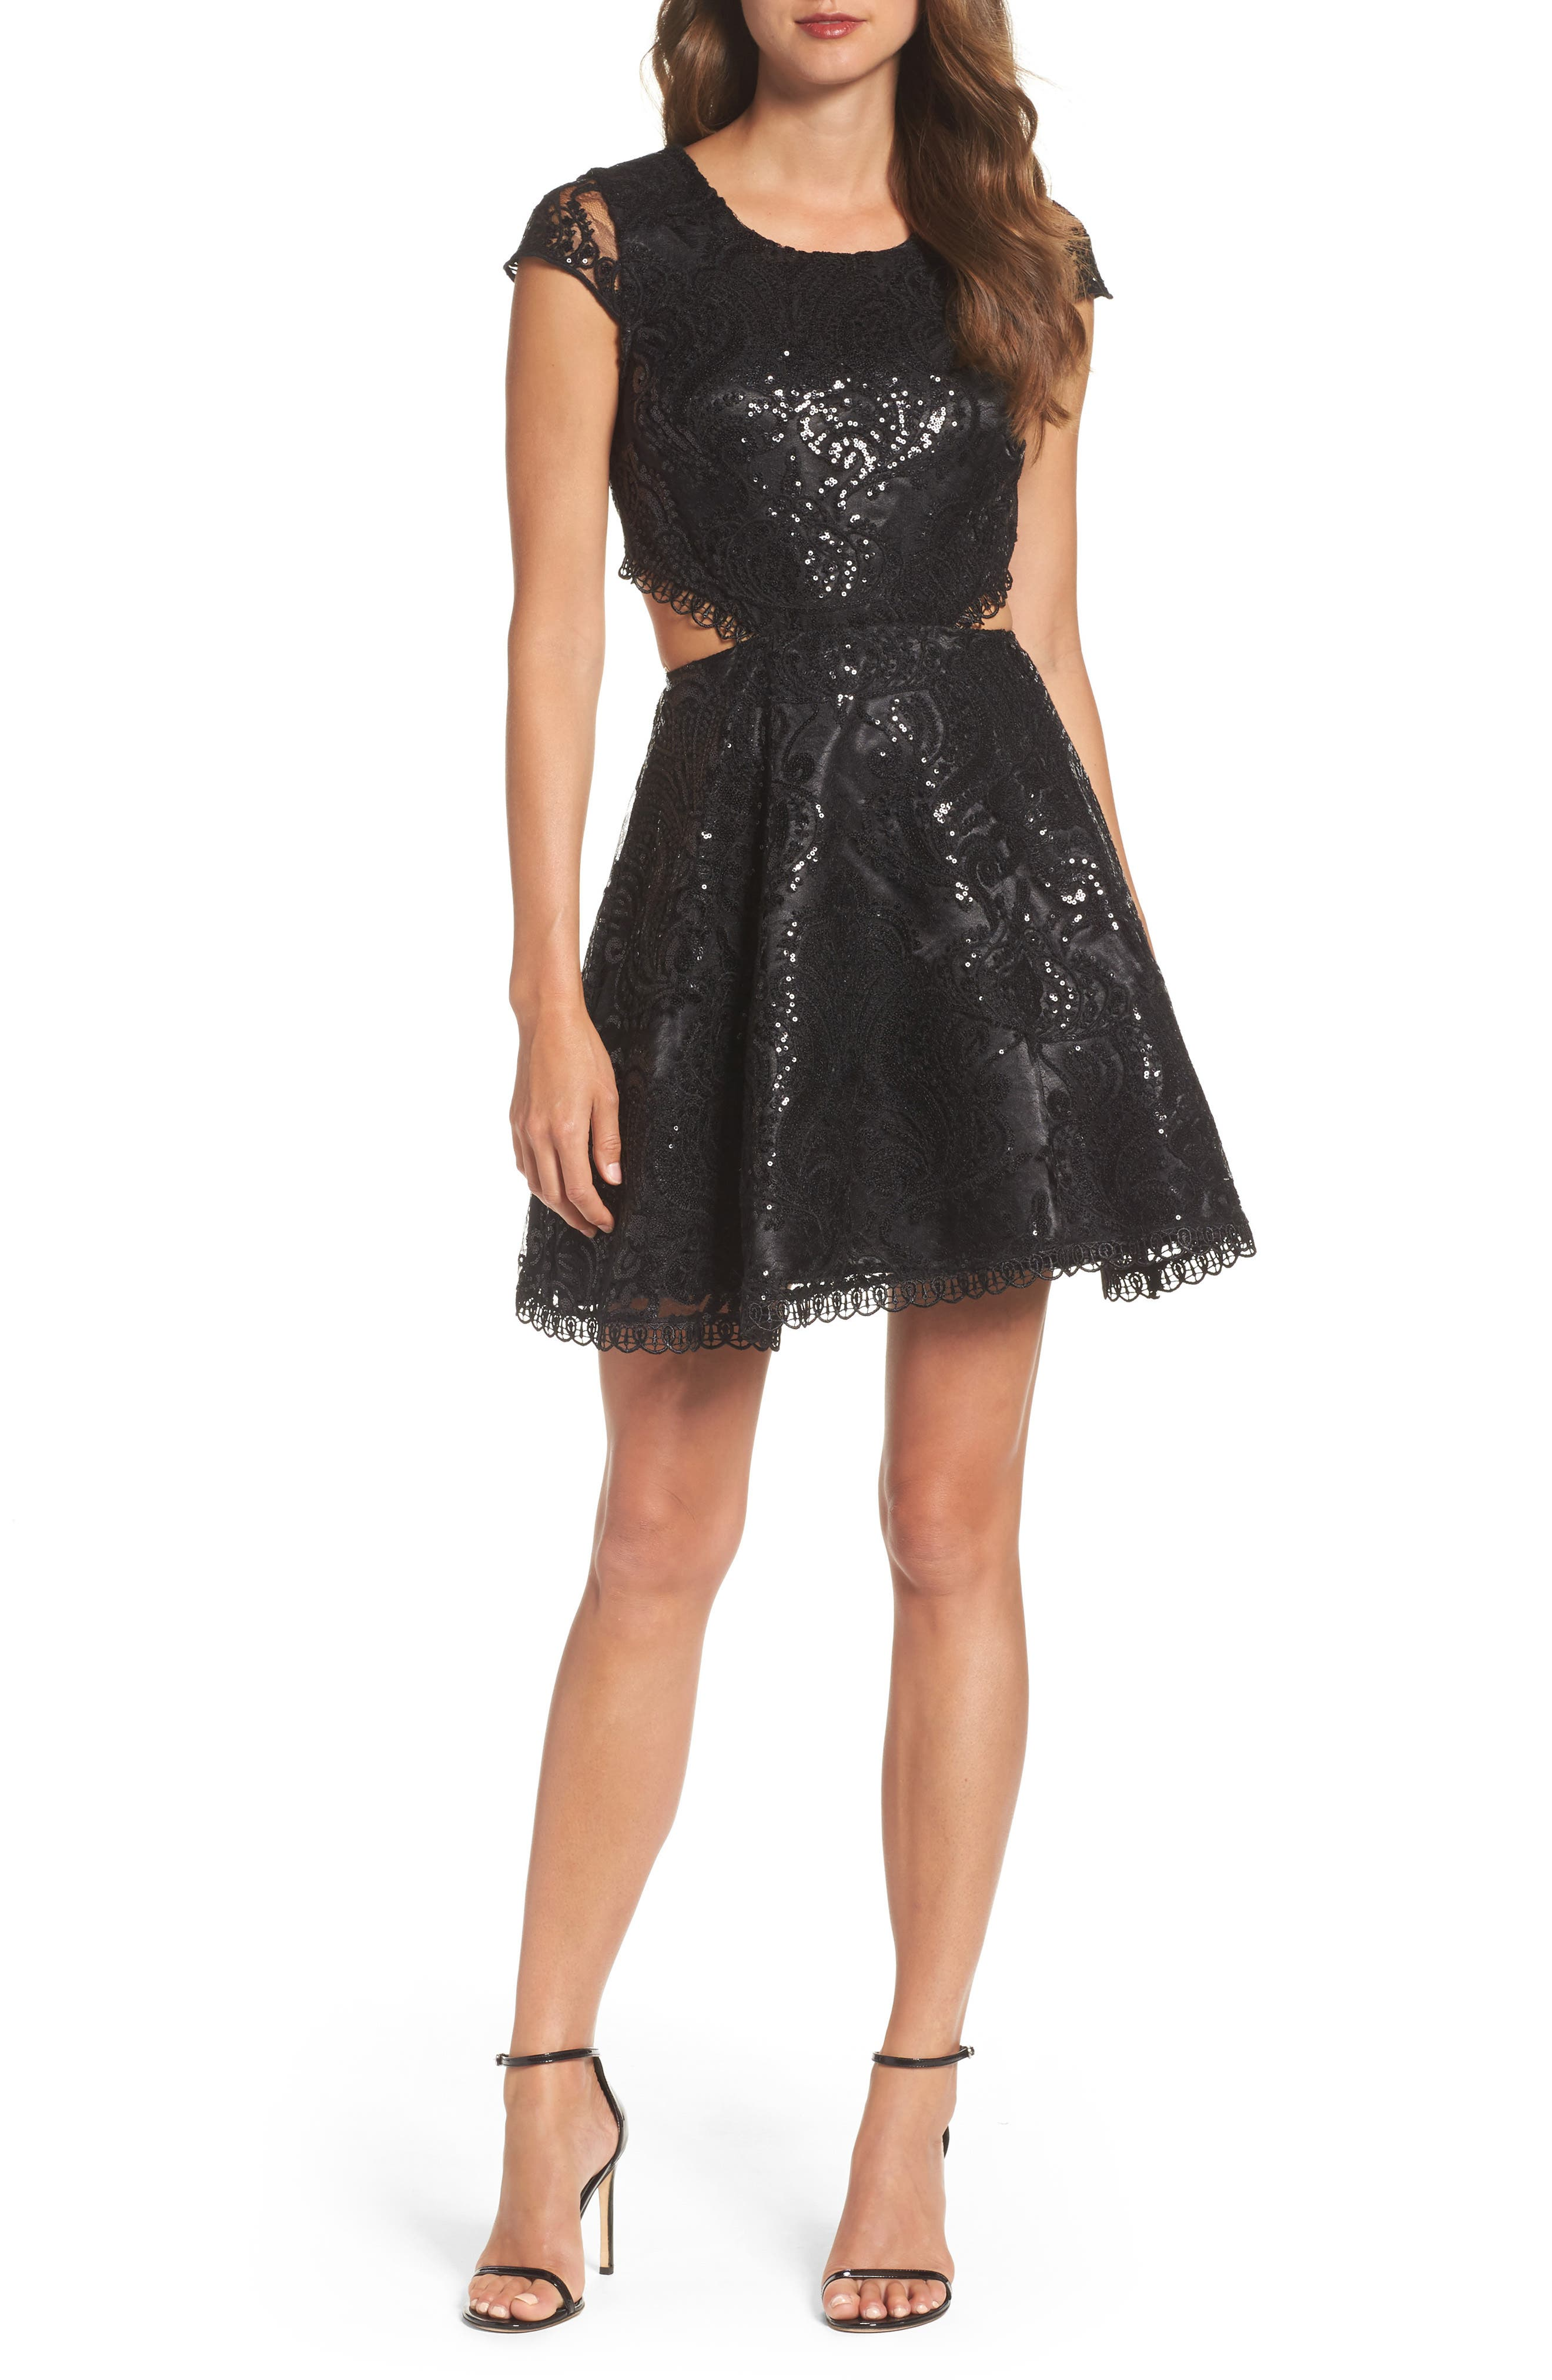 Sequin Hearts Cutout Sequin Lace Fit & Flare Dress